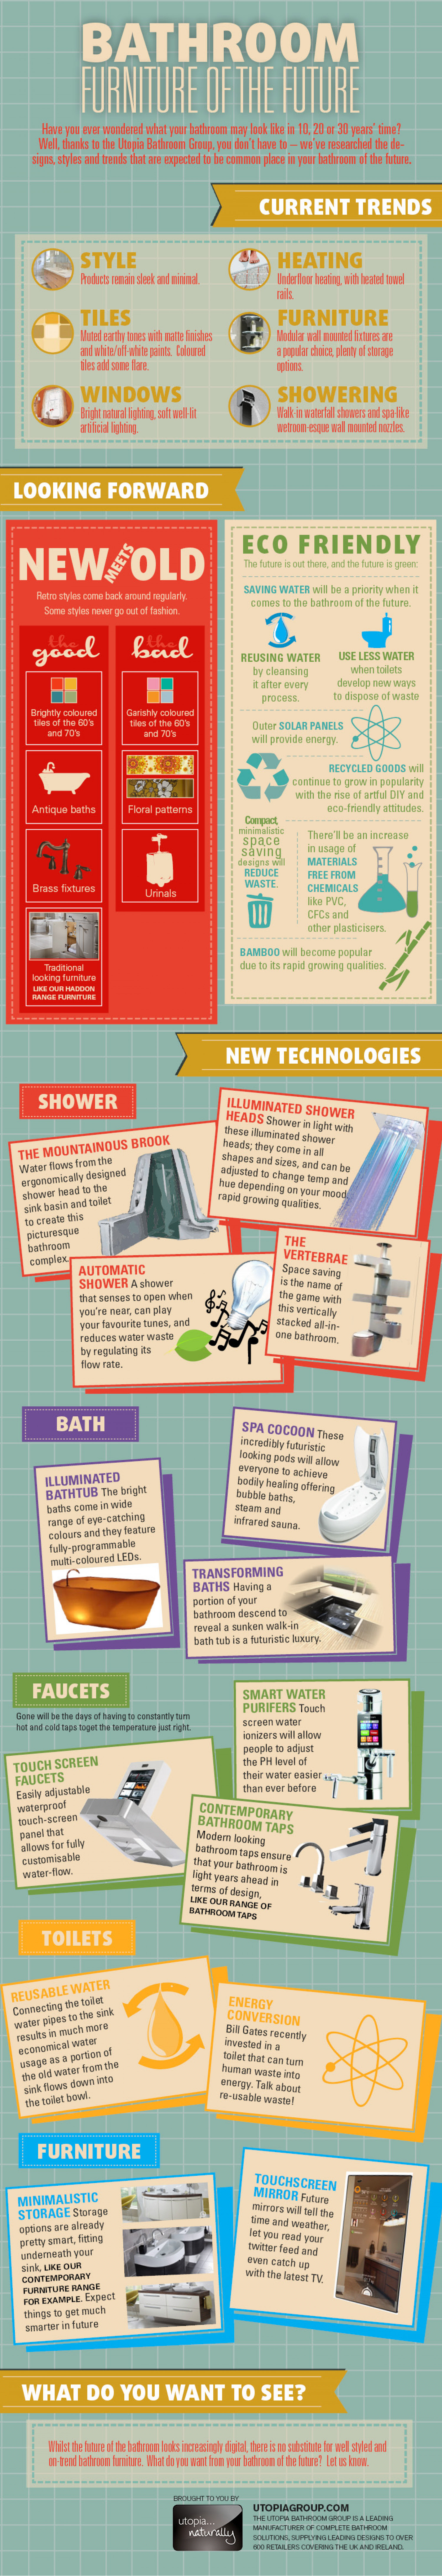 Bathroom Furniture of the Future Infographic